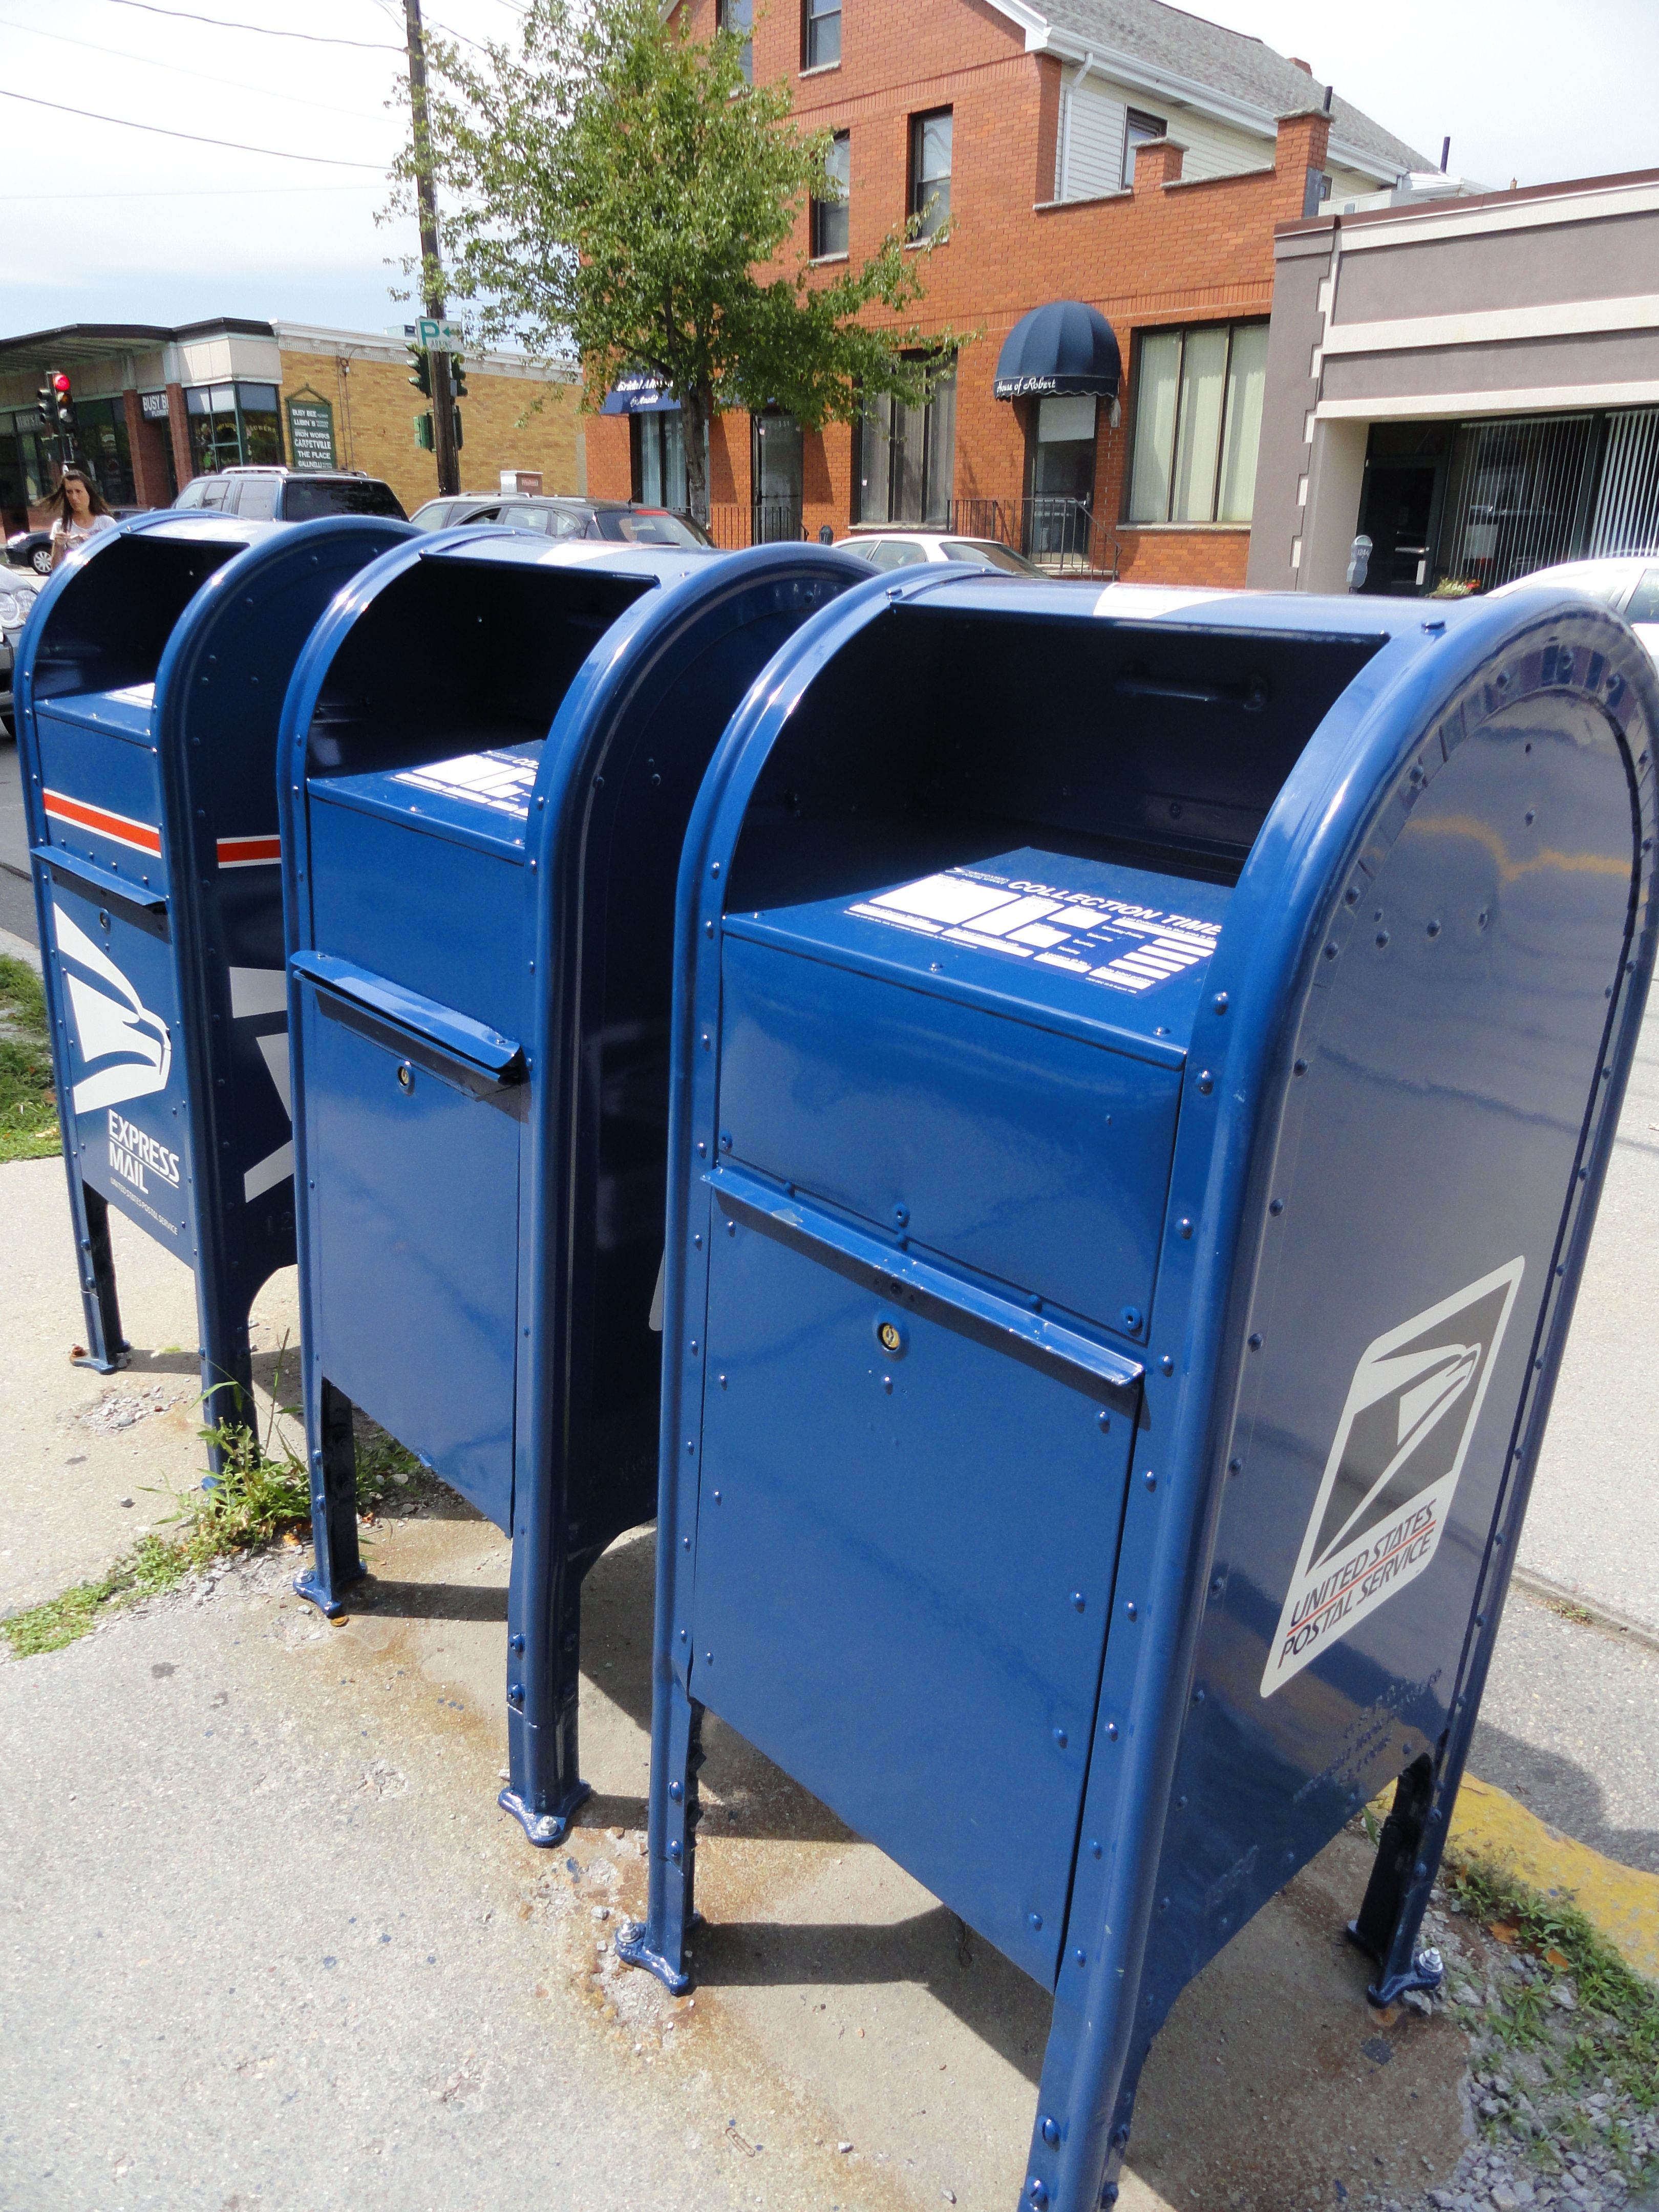 monday expected to be us postal services busiest day - Does Mail Get Delivered On Christmas Eve